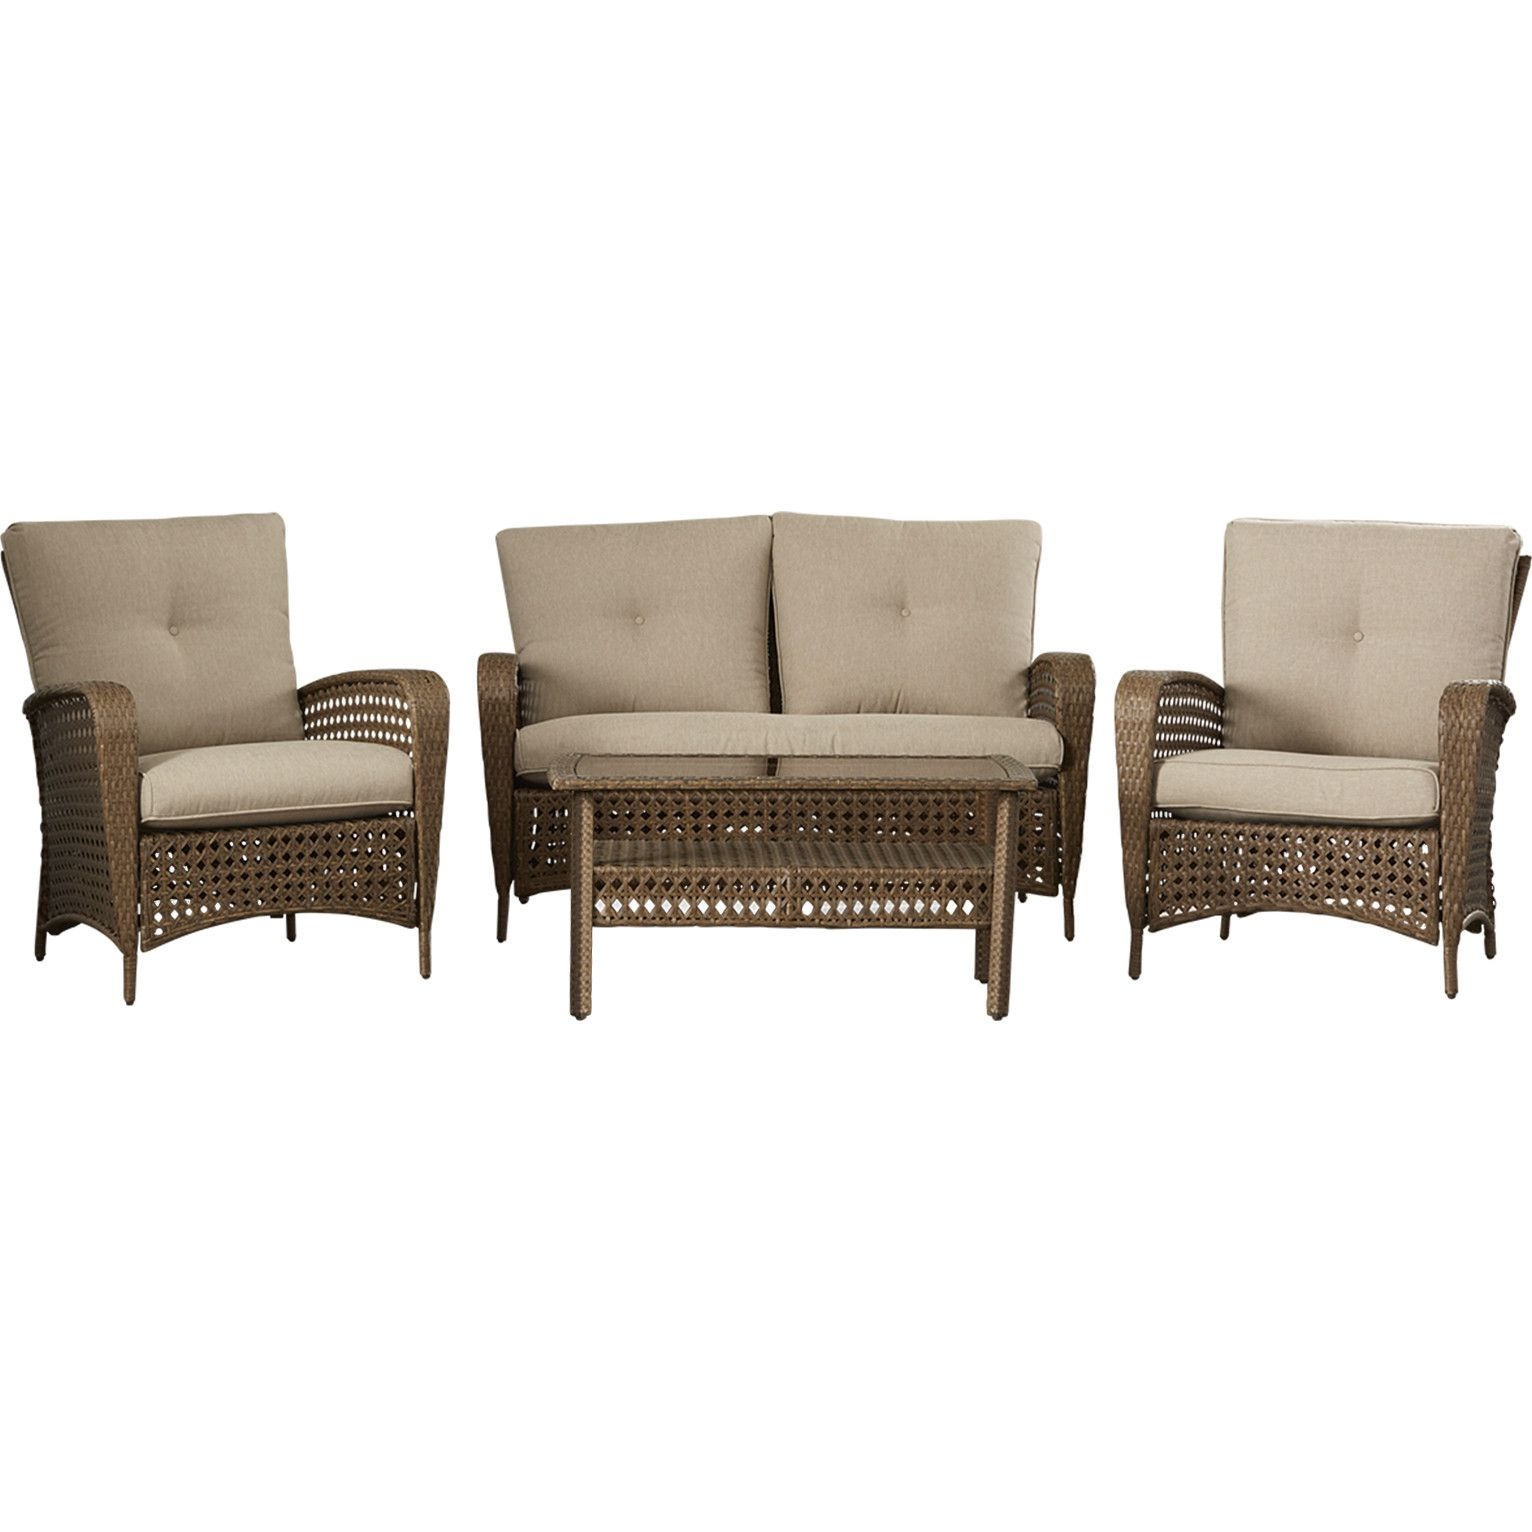 Cosco Home and fice Lakewood Ranch 4 Piece Sofa Seating Group